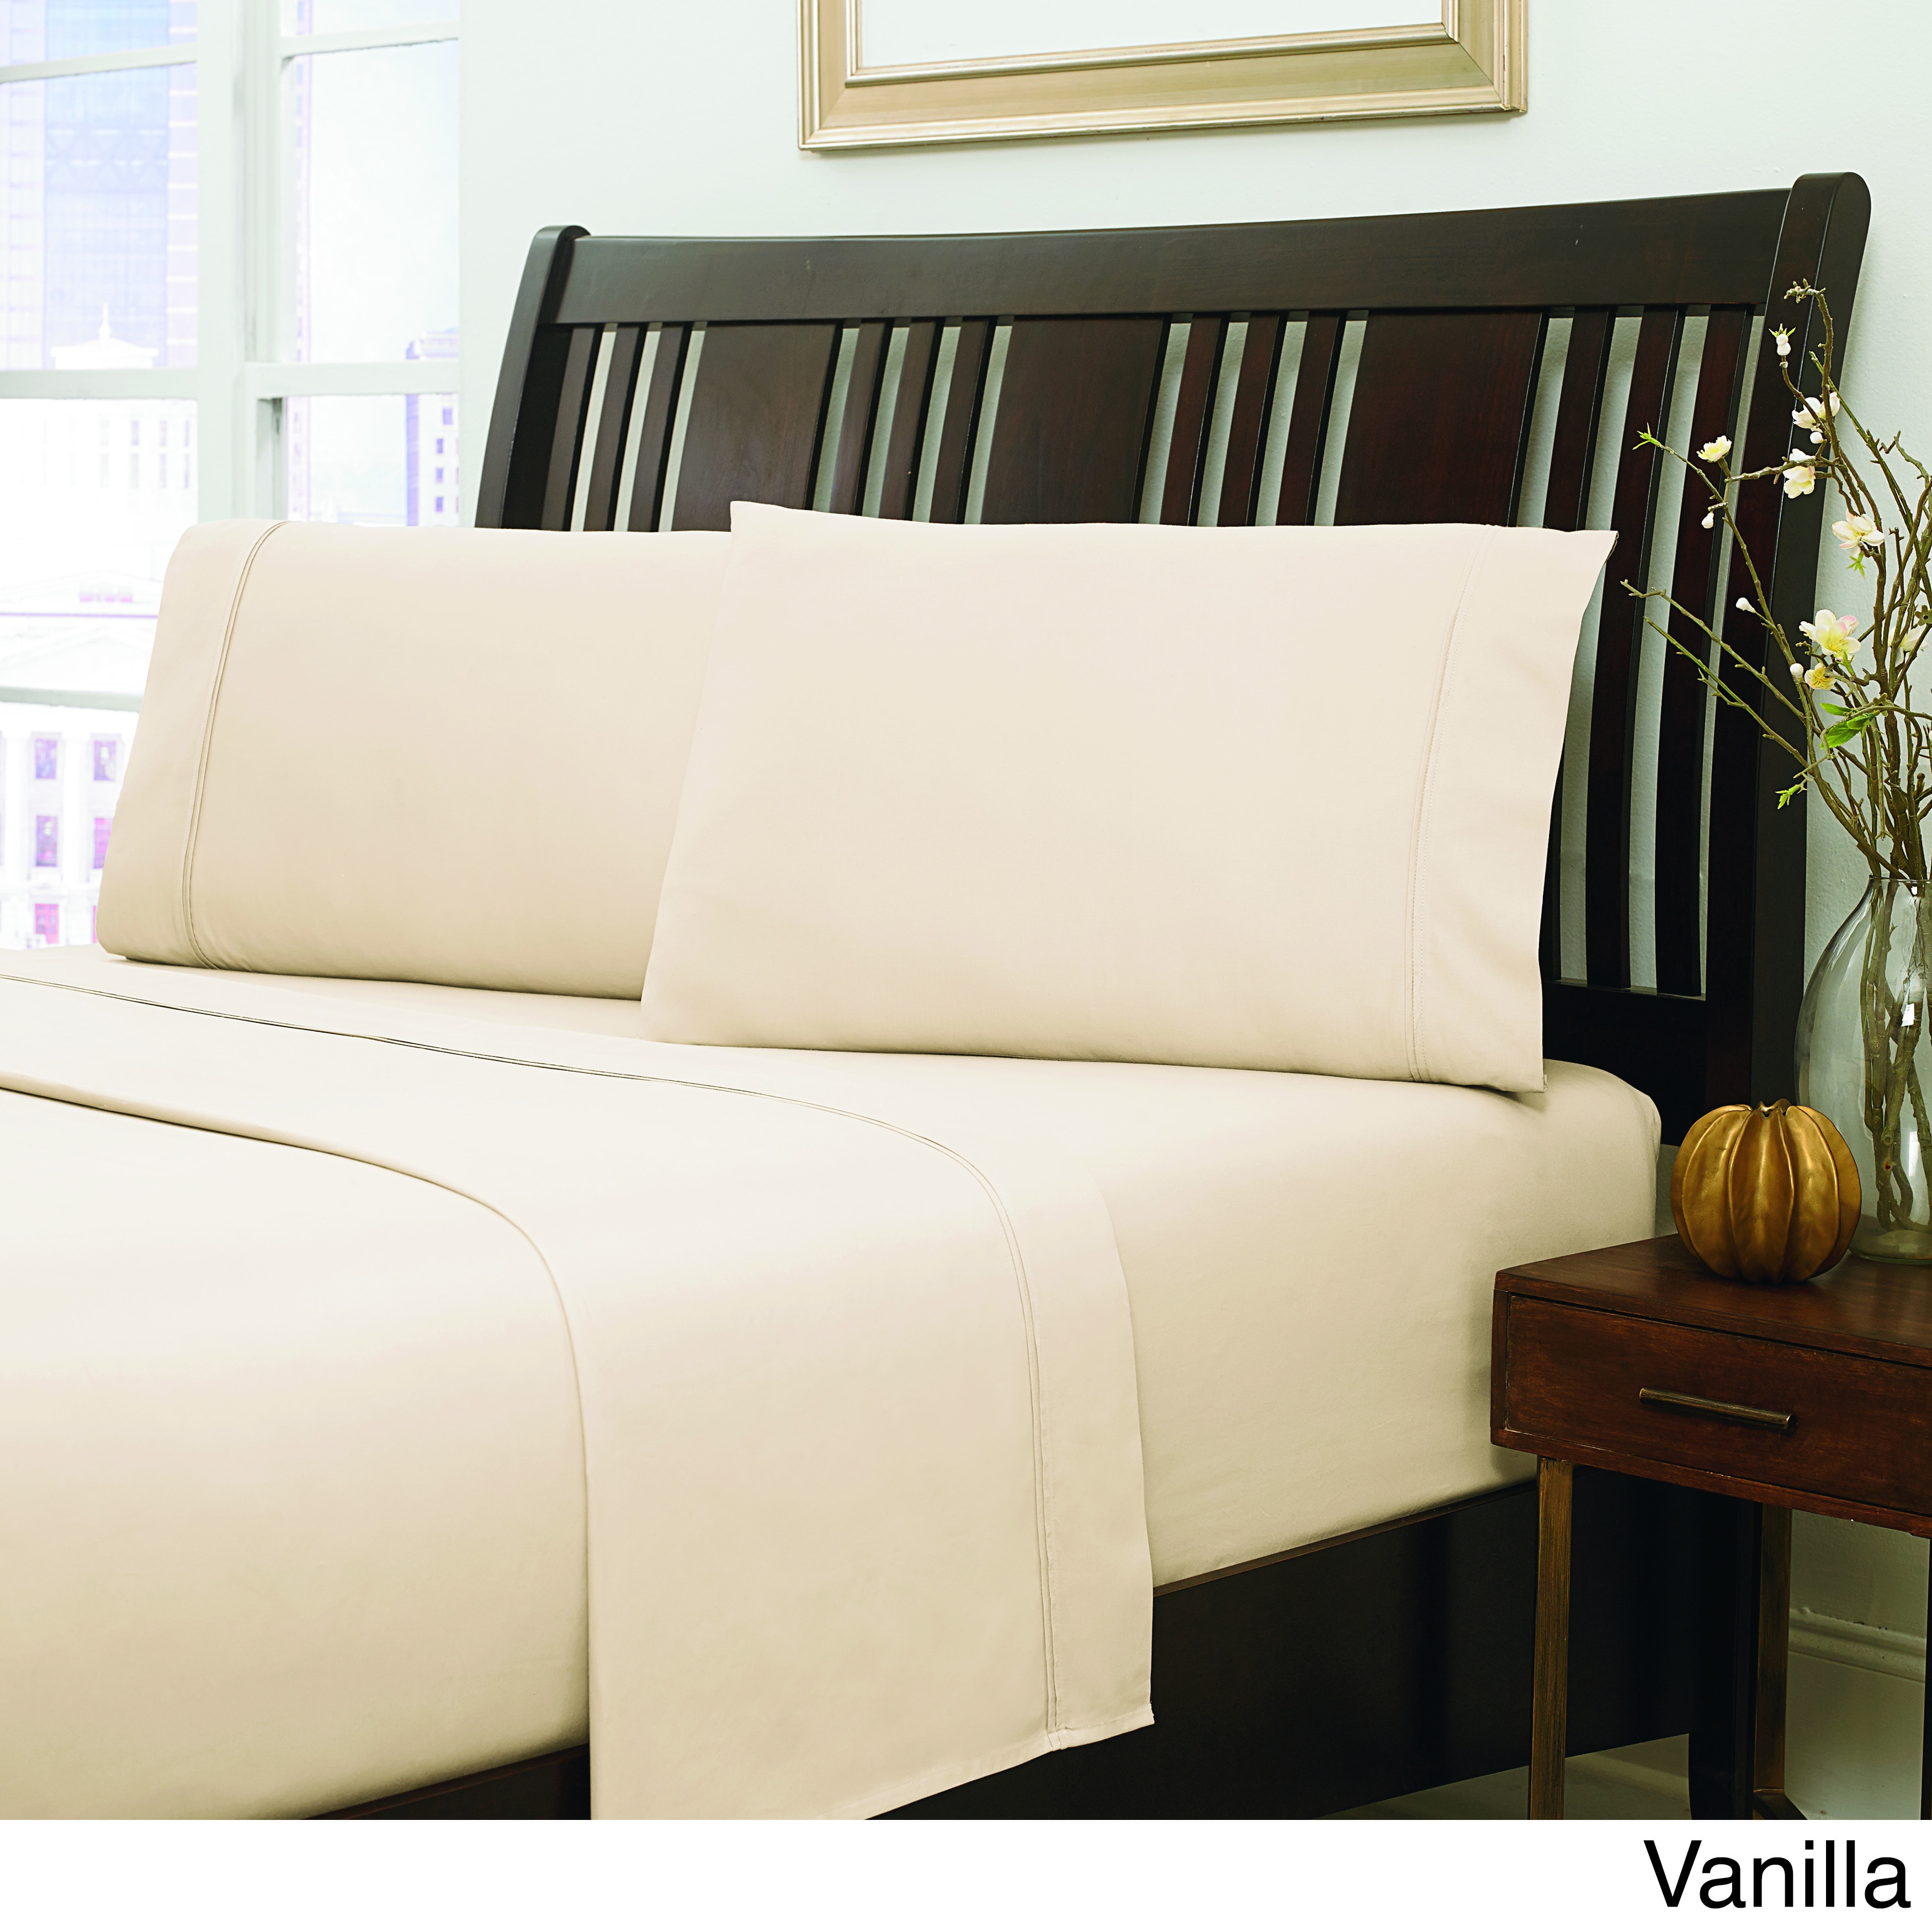 Merveilleux Shop HygroSoft By Welspun 300 Thread Count Cotton Sheet Set   On Sale    Free Shipping Today   Overstock.com   9940296